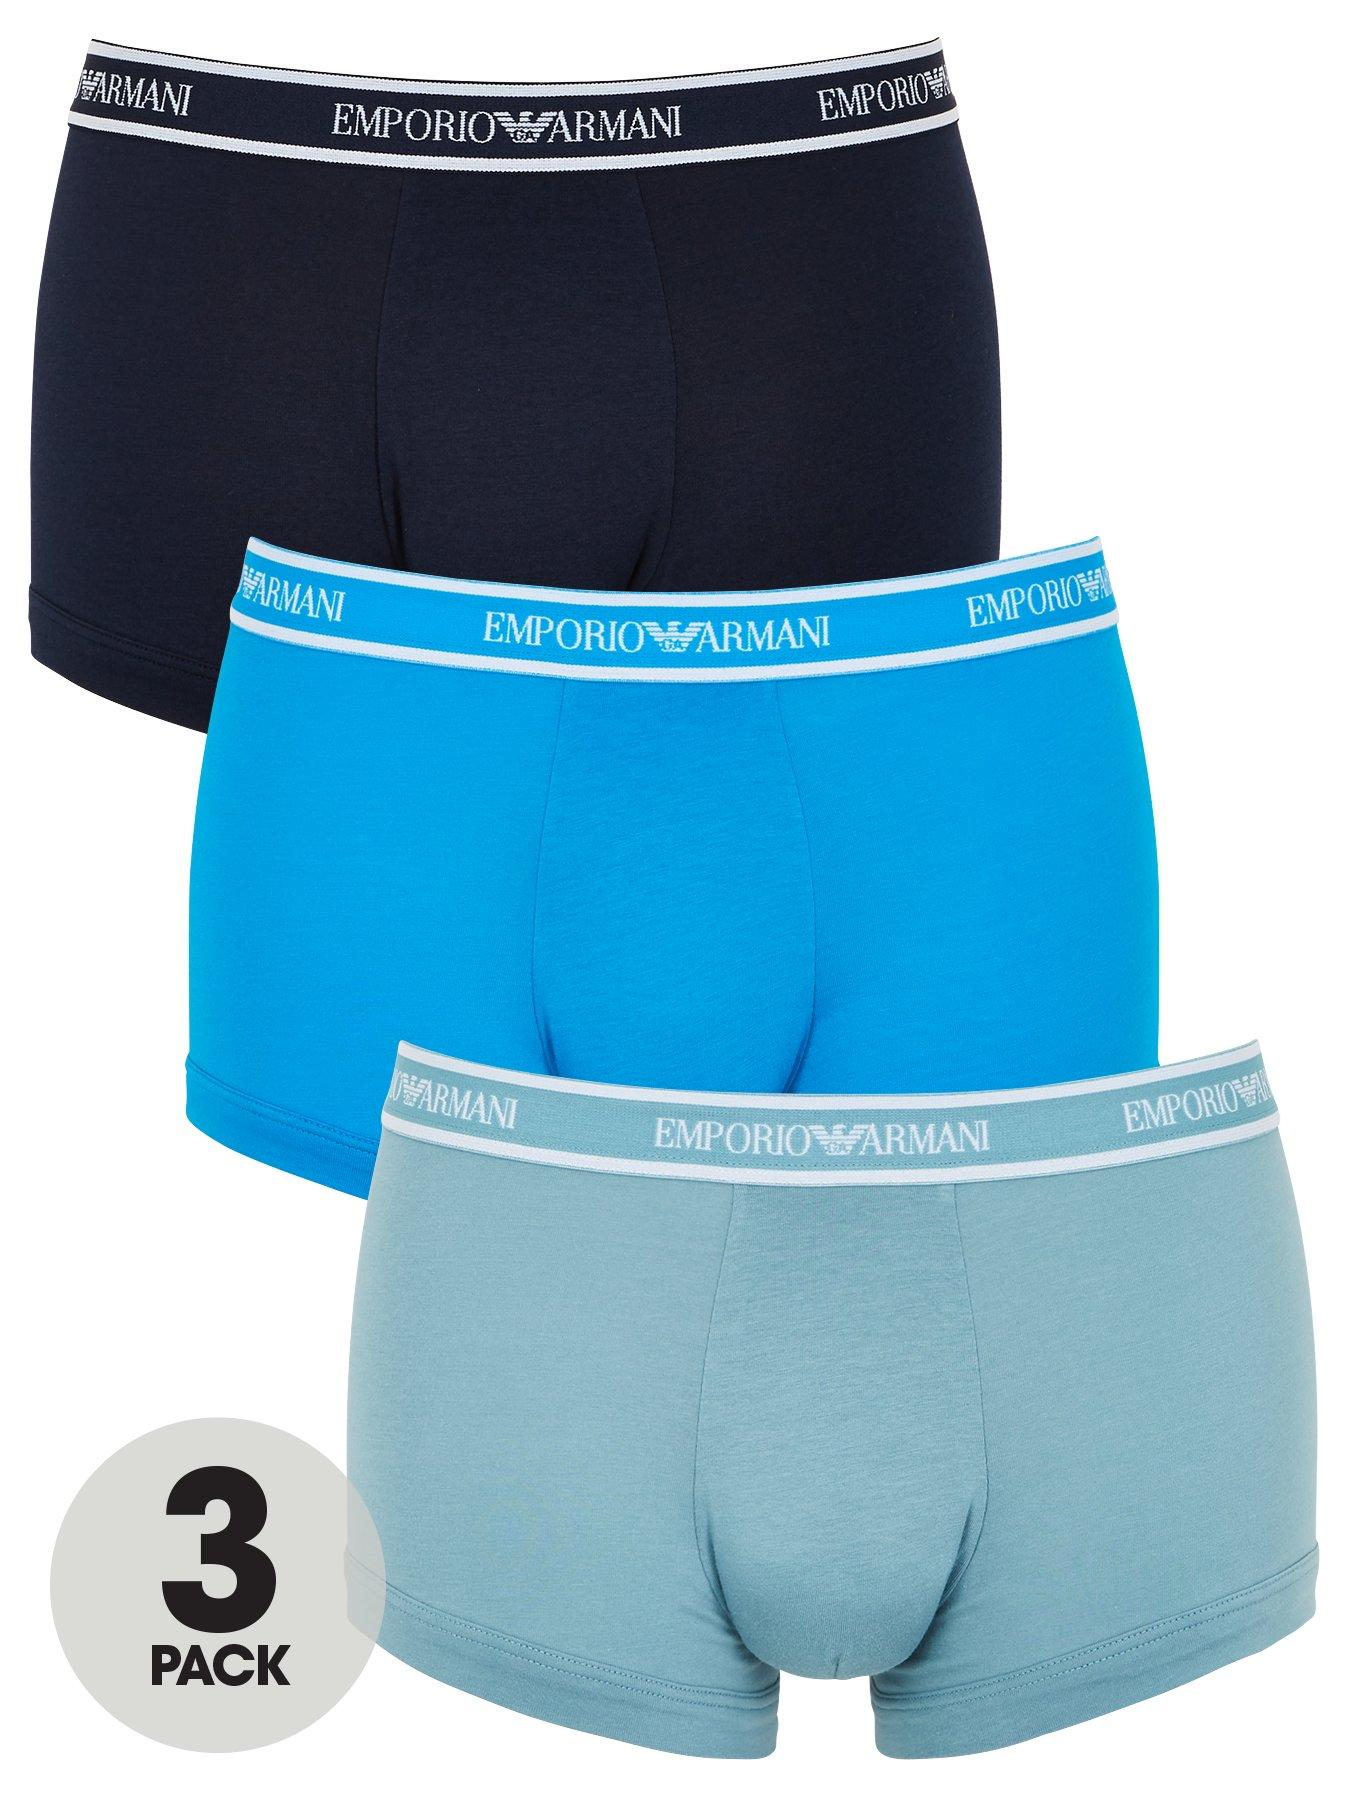 Size XXL Superdry Men's Boxers Double Pack Turquoise//Navy